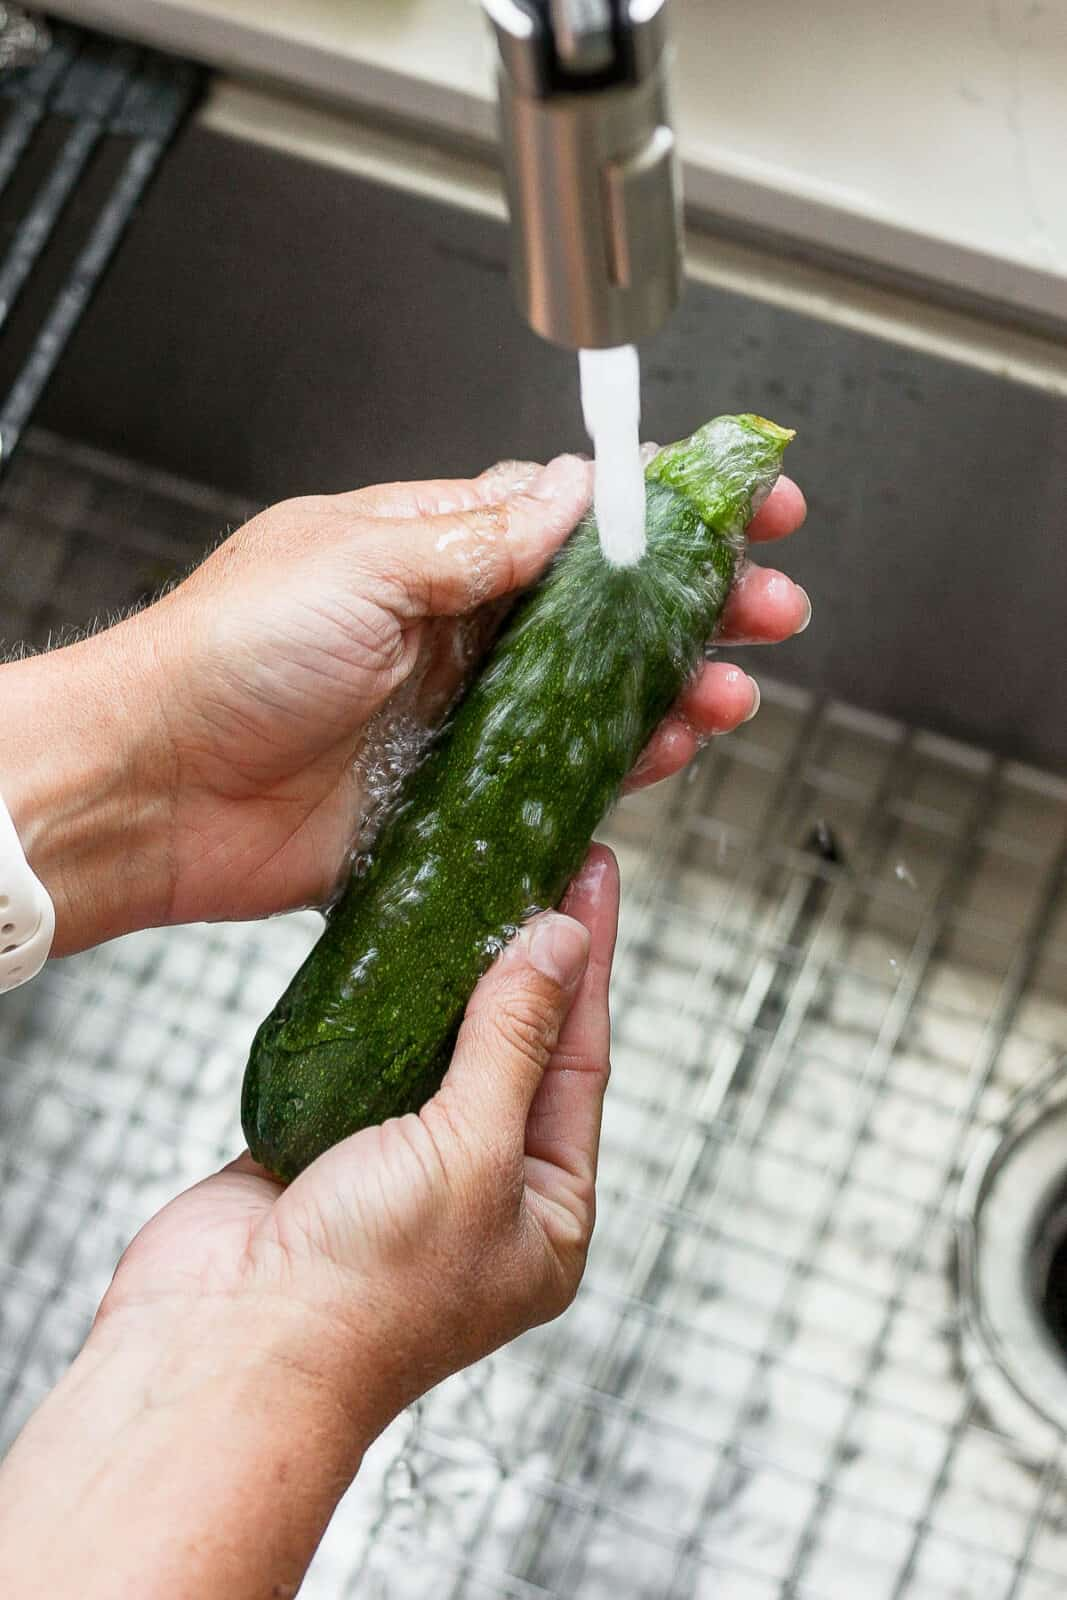 Someone washing off a zucchini in the sink.